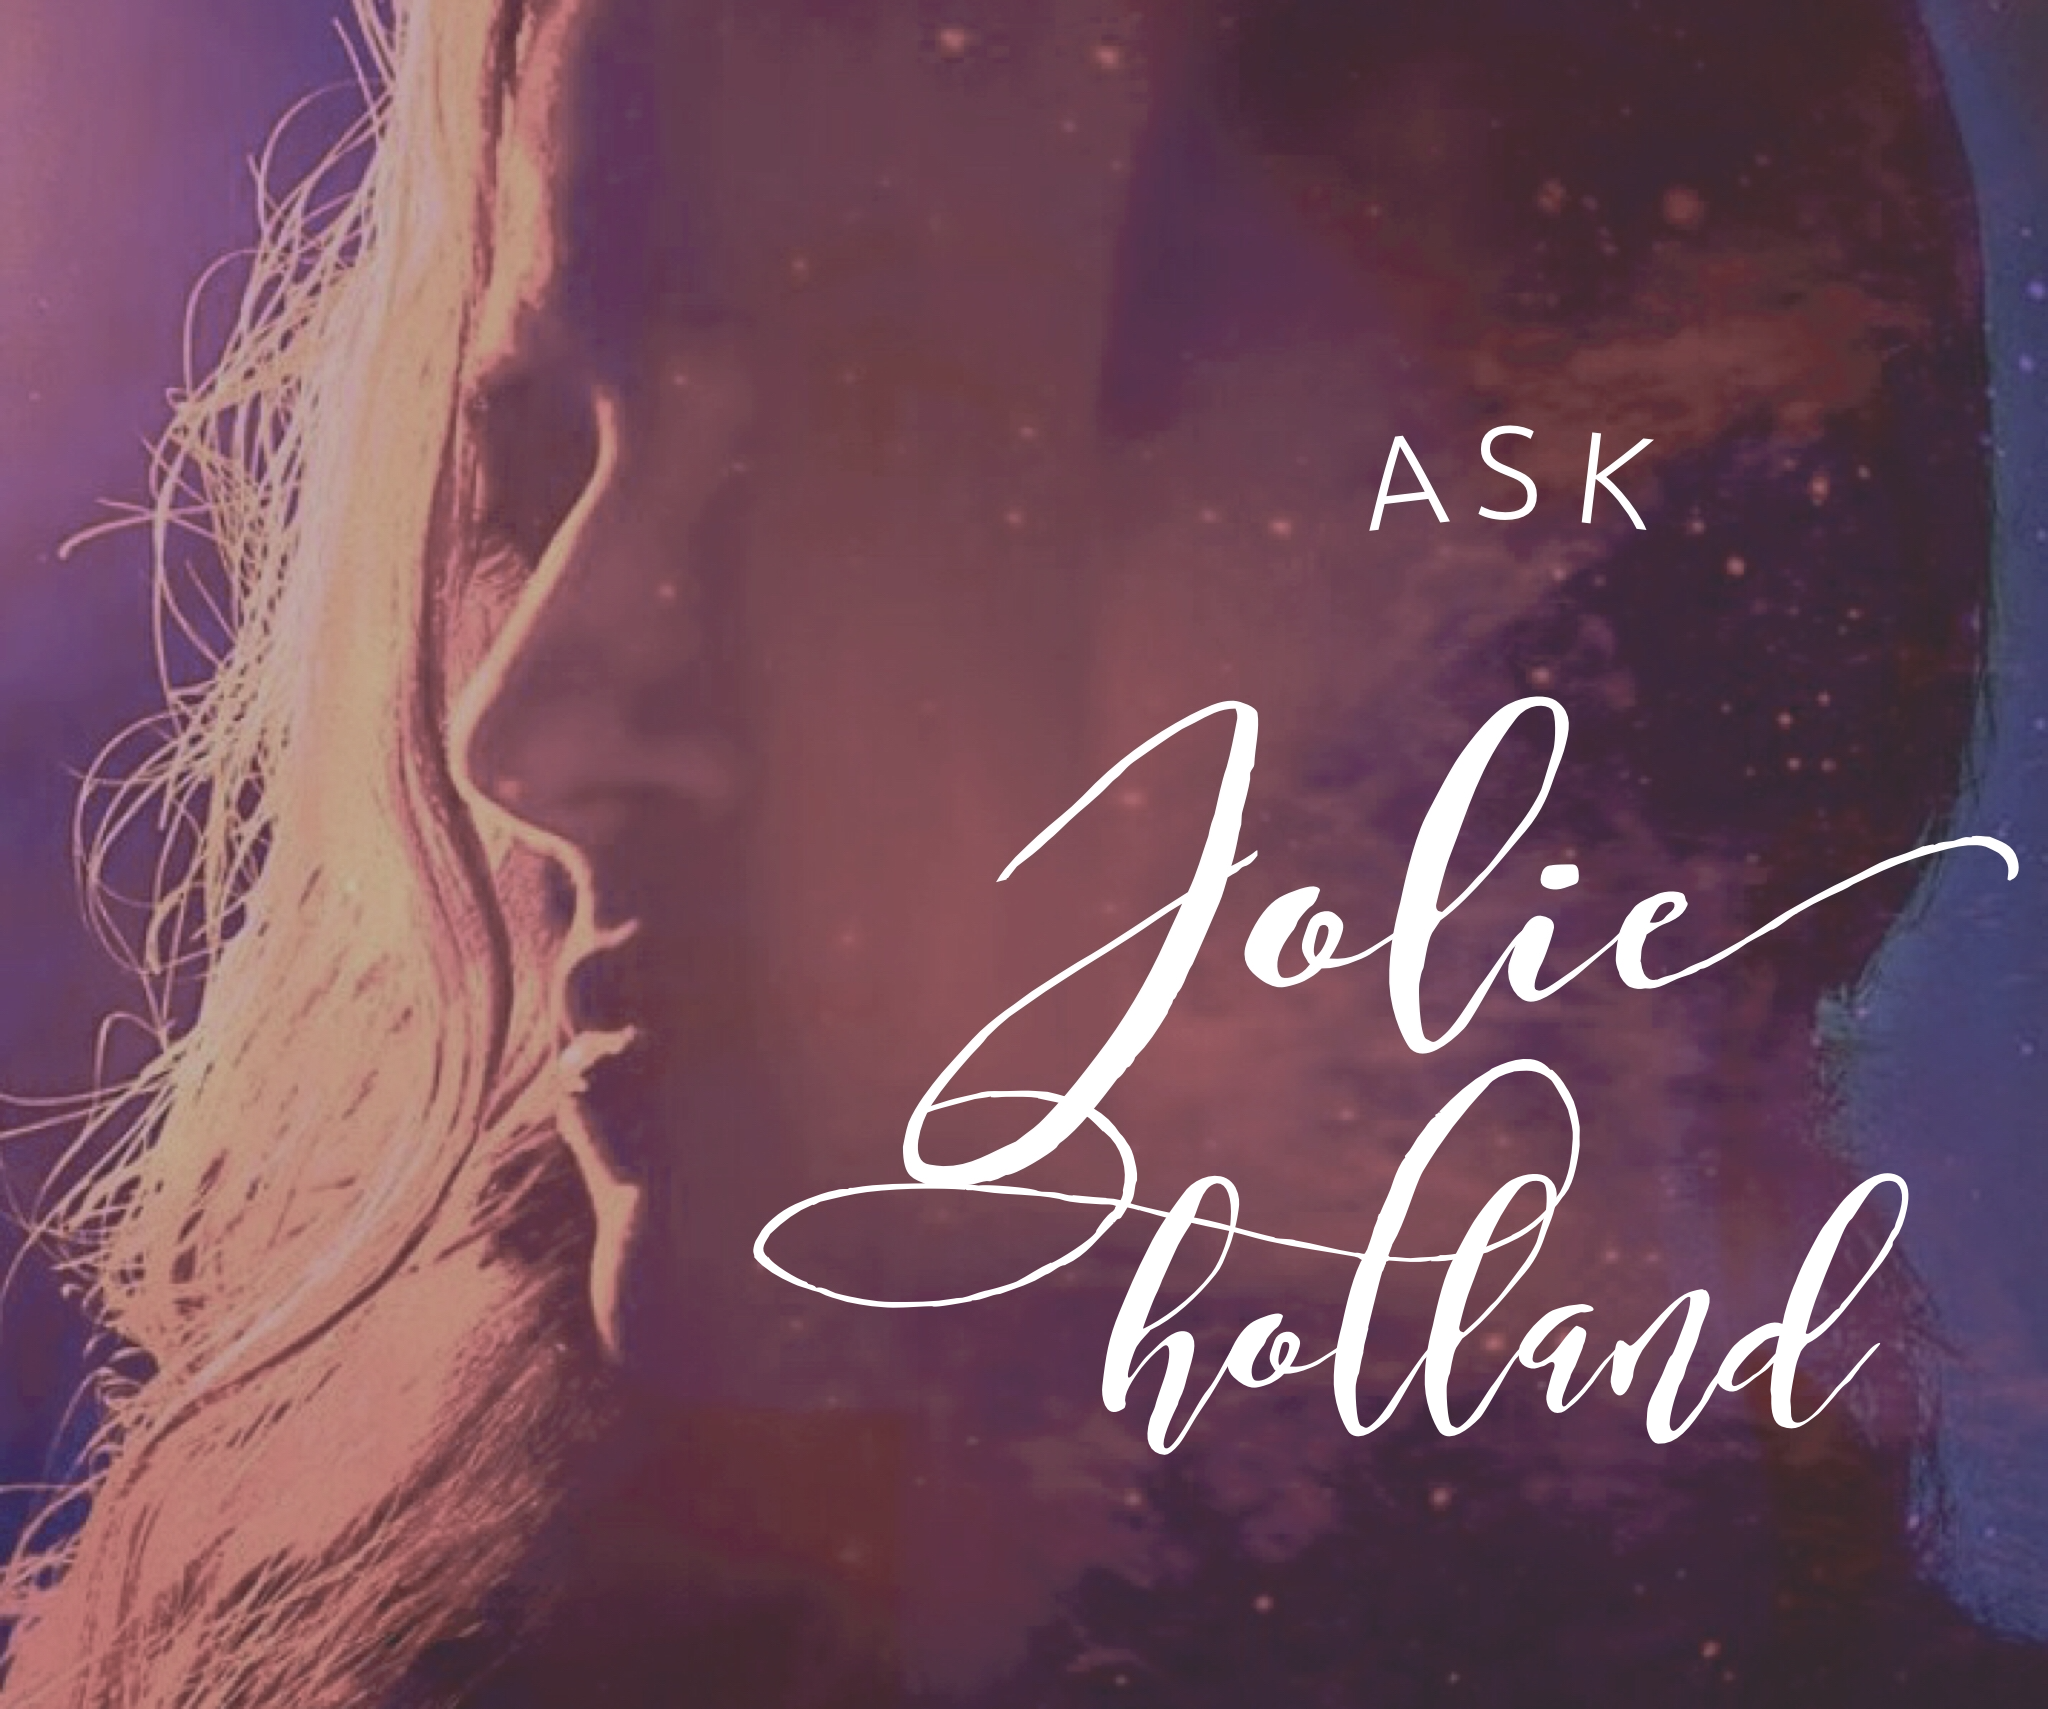 Ask Jolie Holland: Getting Bogged Down by the News